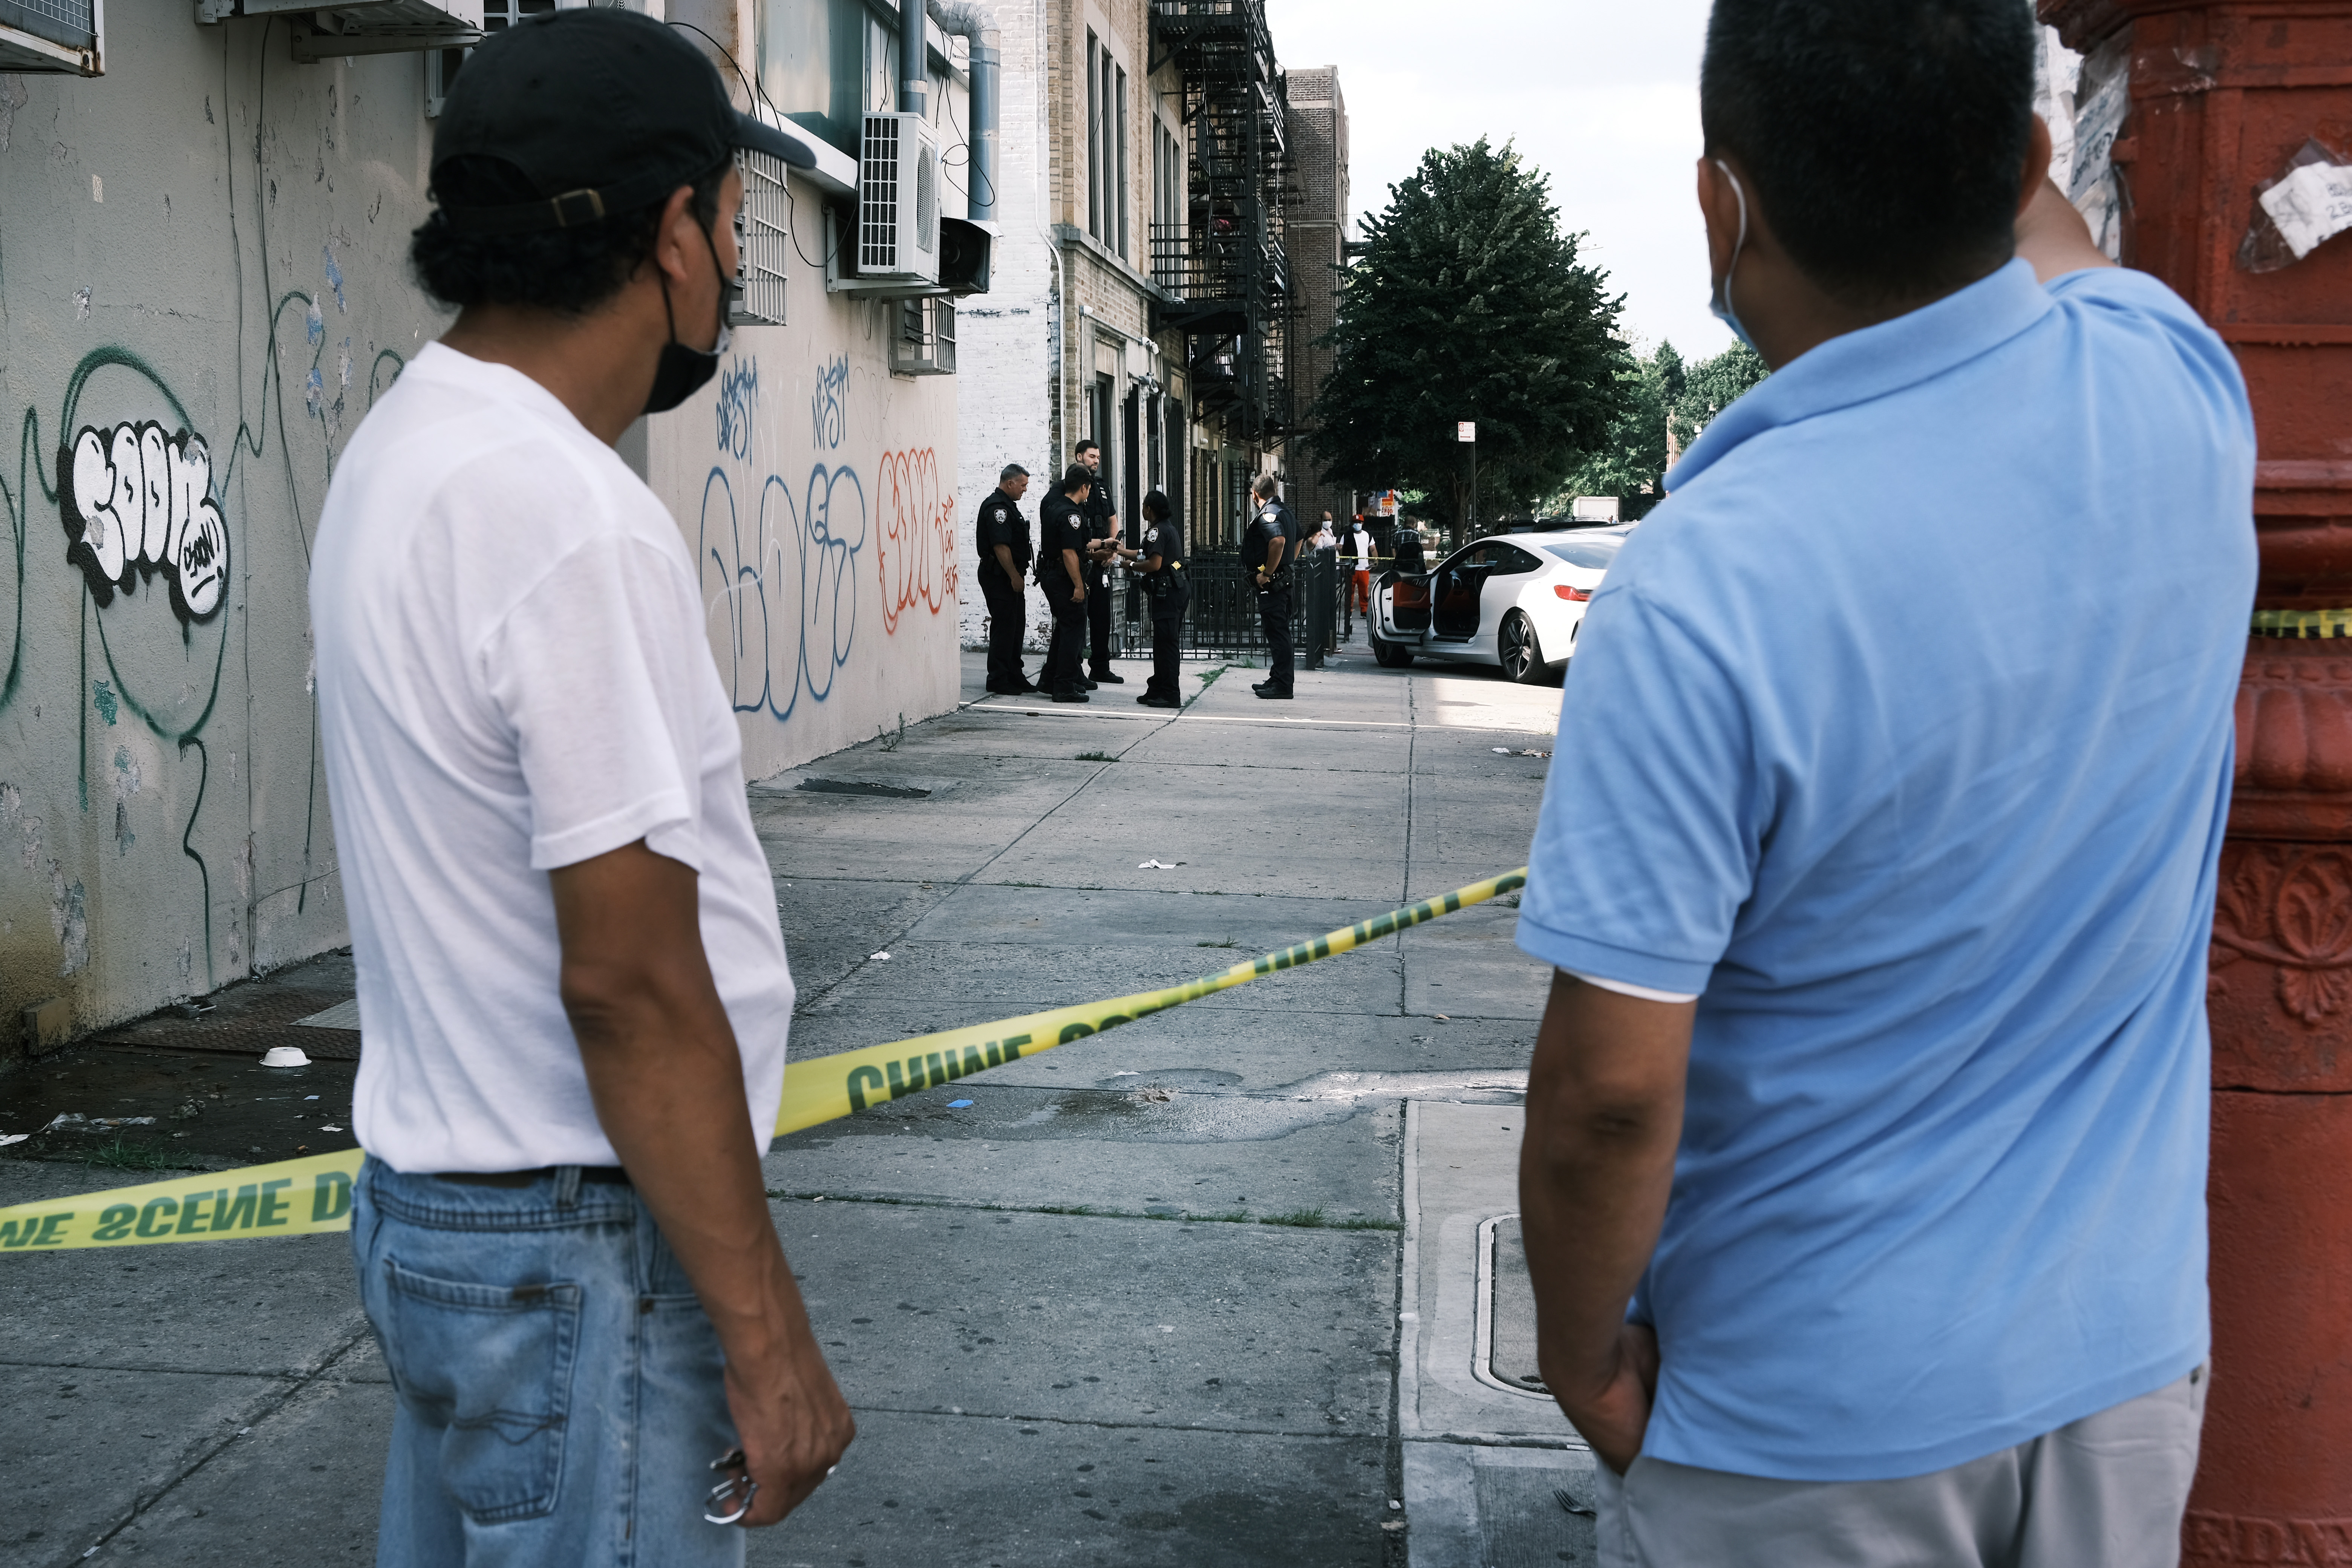 People look on as police converge on the scene of a shooting in Brooklyn, one of numerous during the day, on July 14, 2021 in New York City.